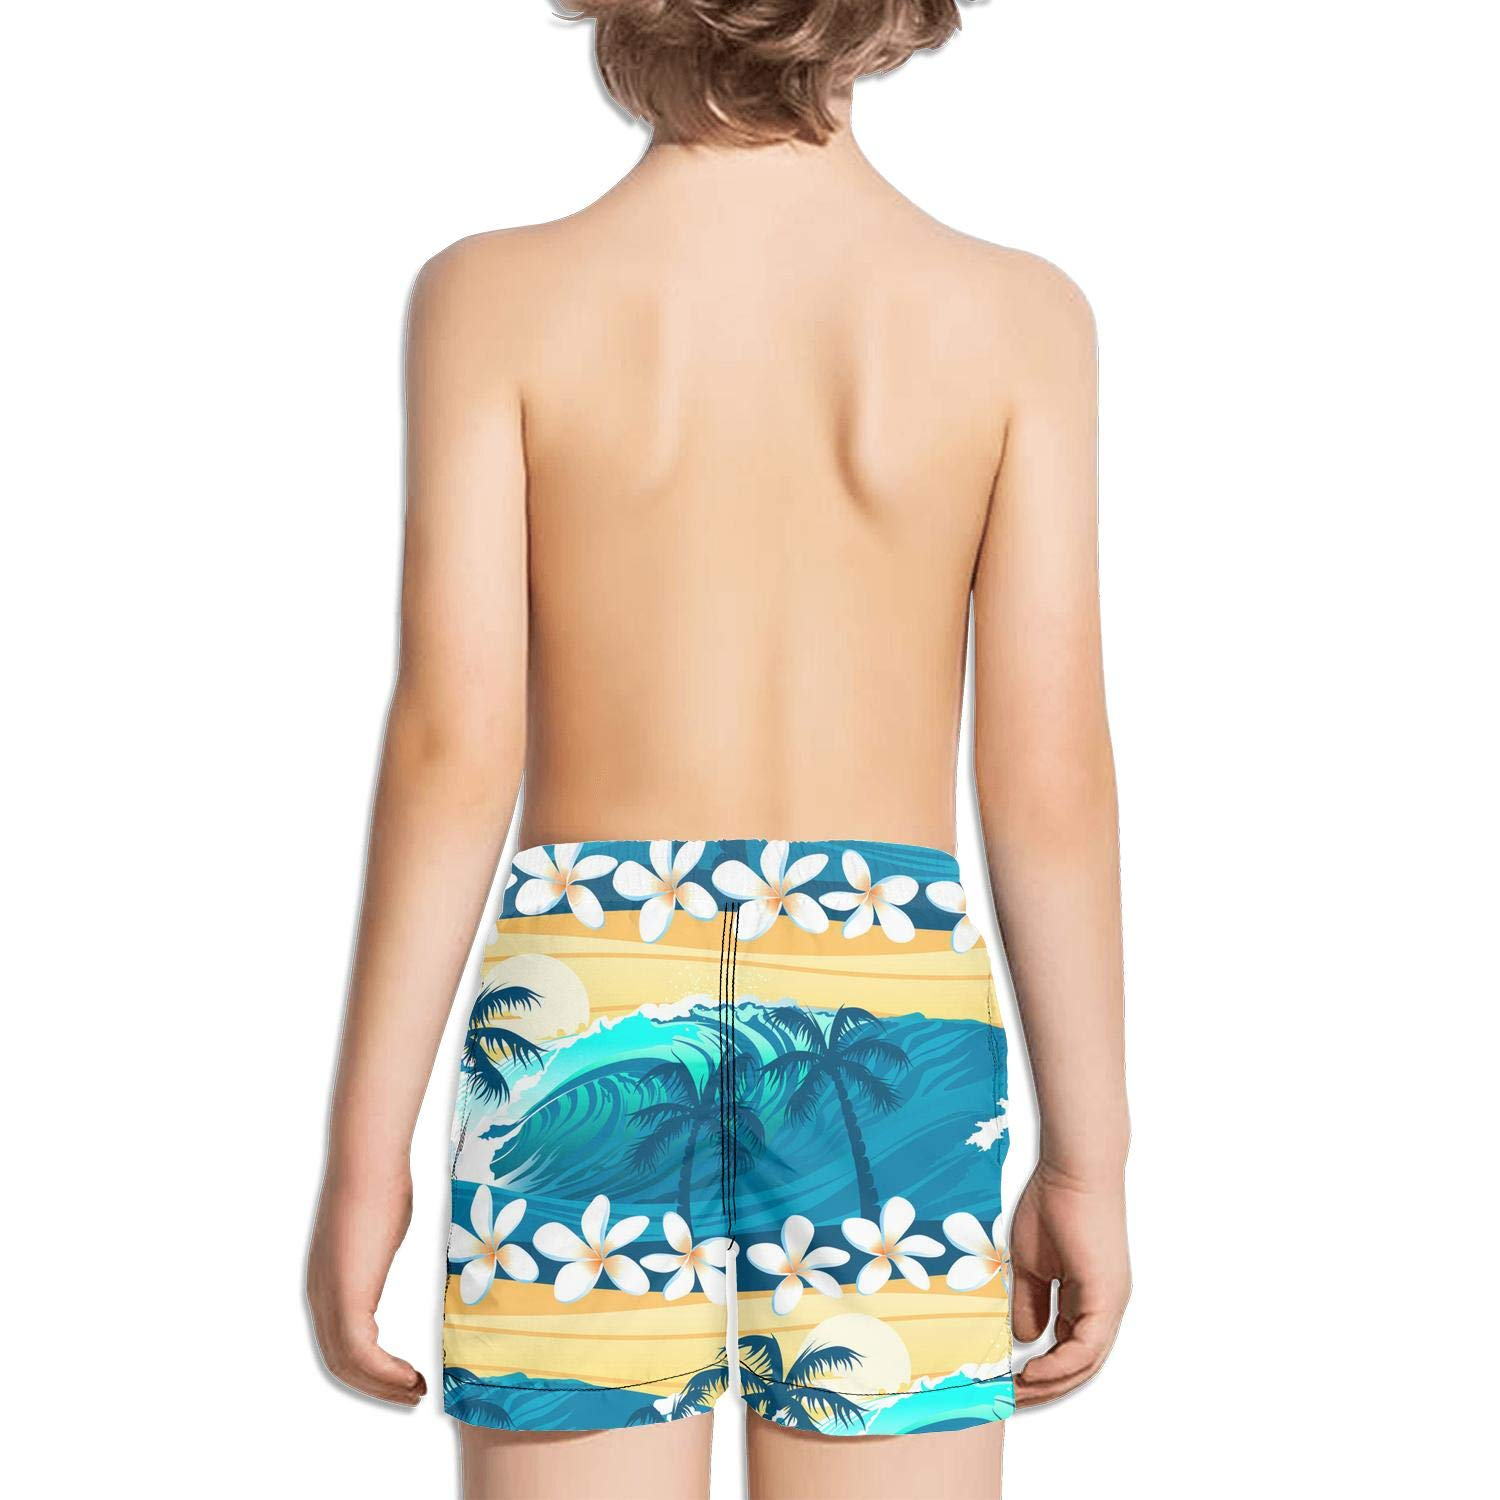 Boys Kids Tropical Surfing Palm Trees Quick Dry Beach Swim Trunk Novelty Swimsuit Beach Shorts with Pocket